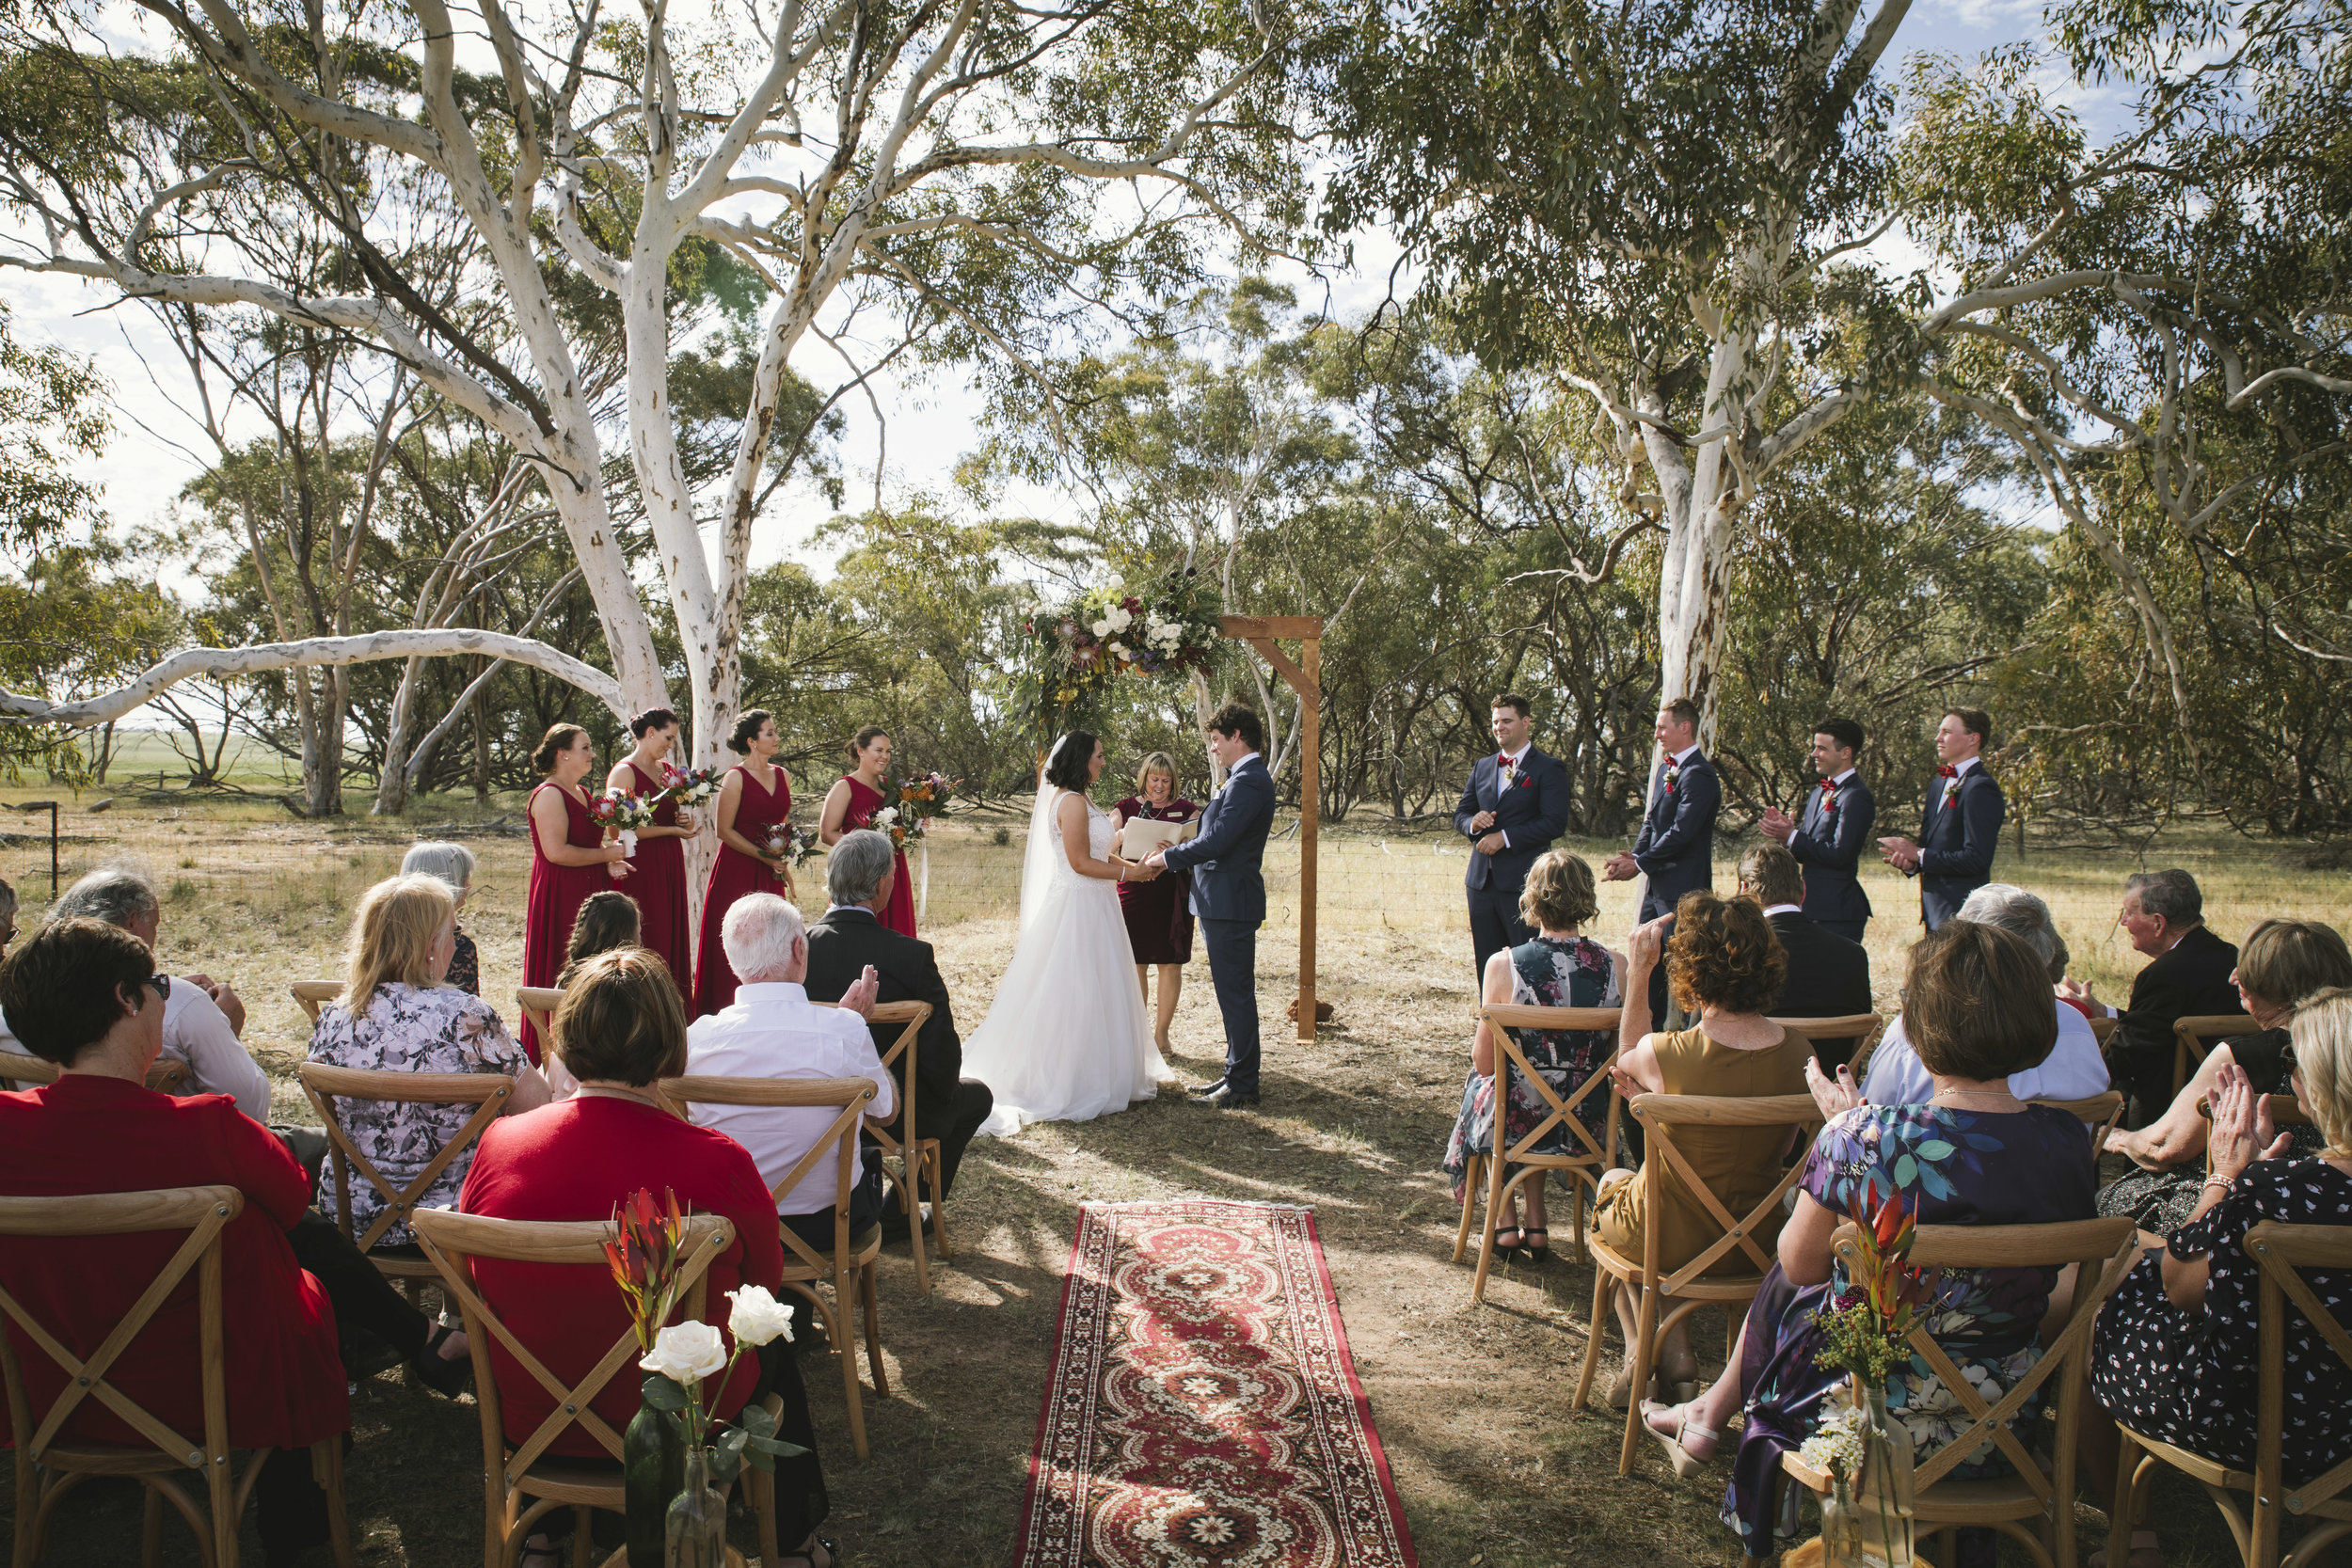 Angie Roe Photography Wheatbelt Avon Valley Farm Wedding (20).jpg